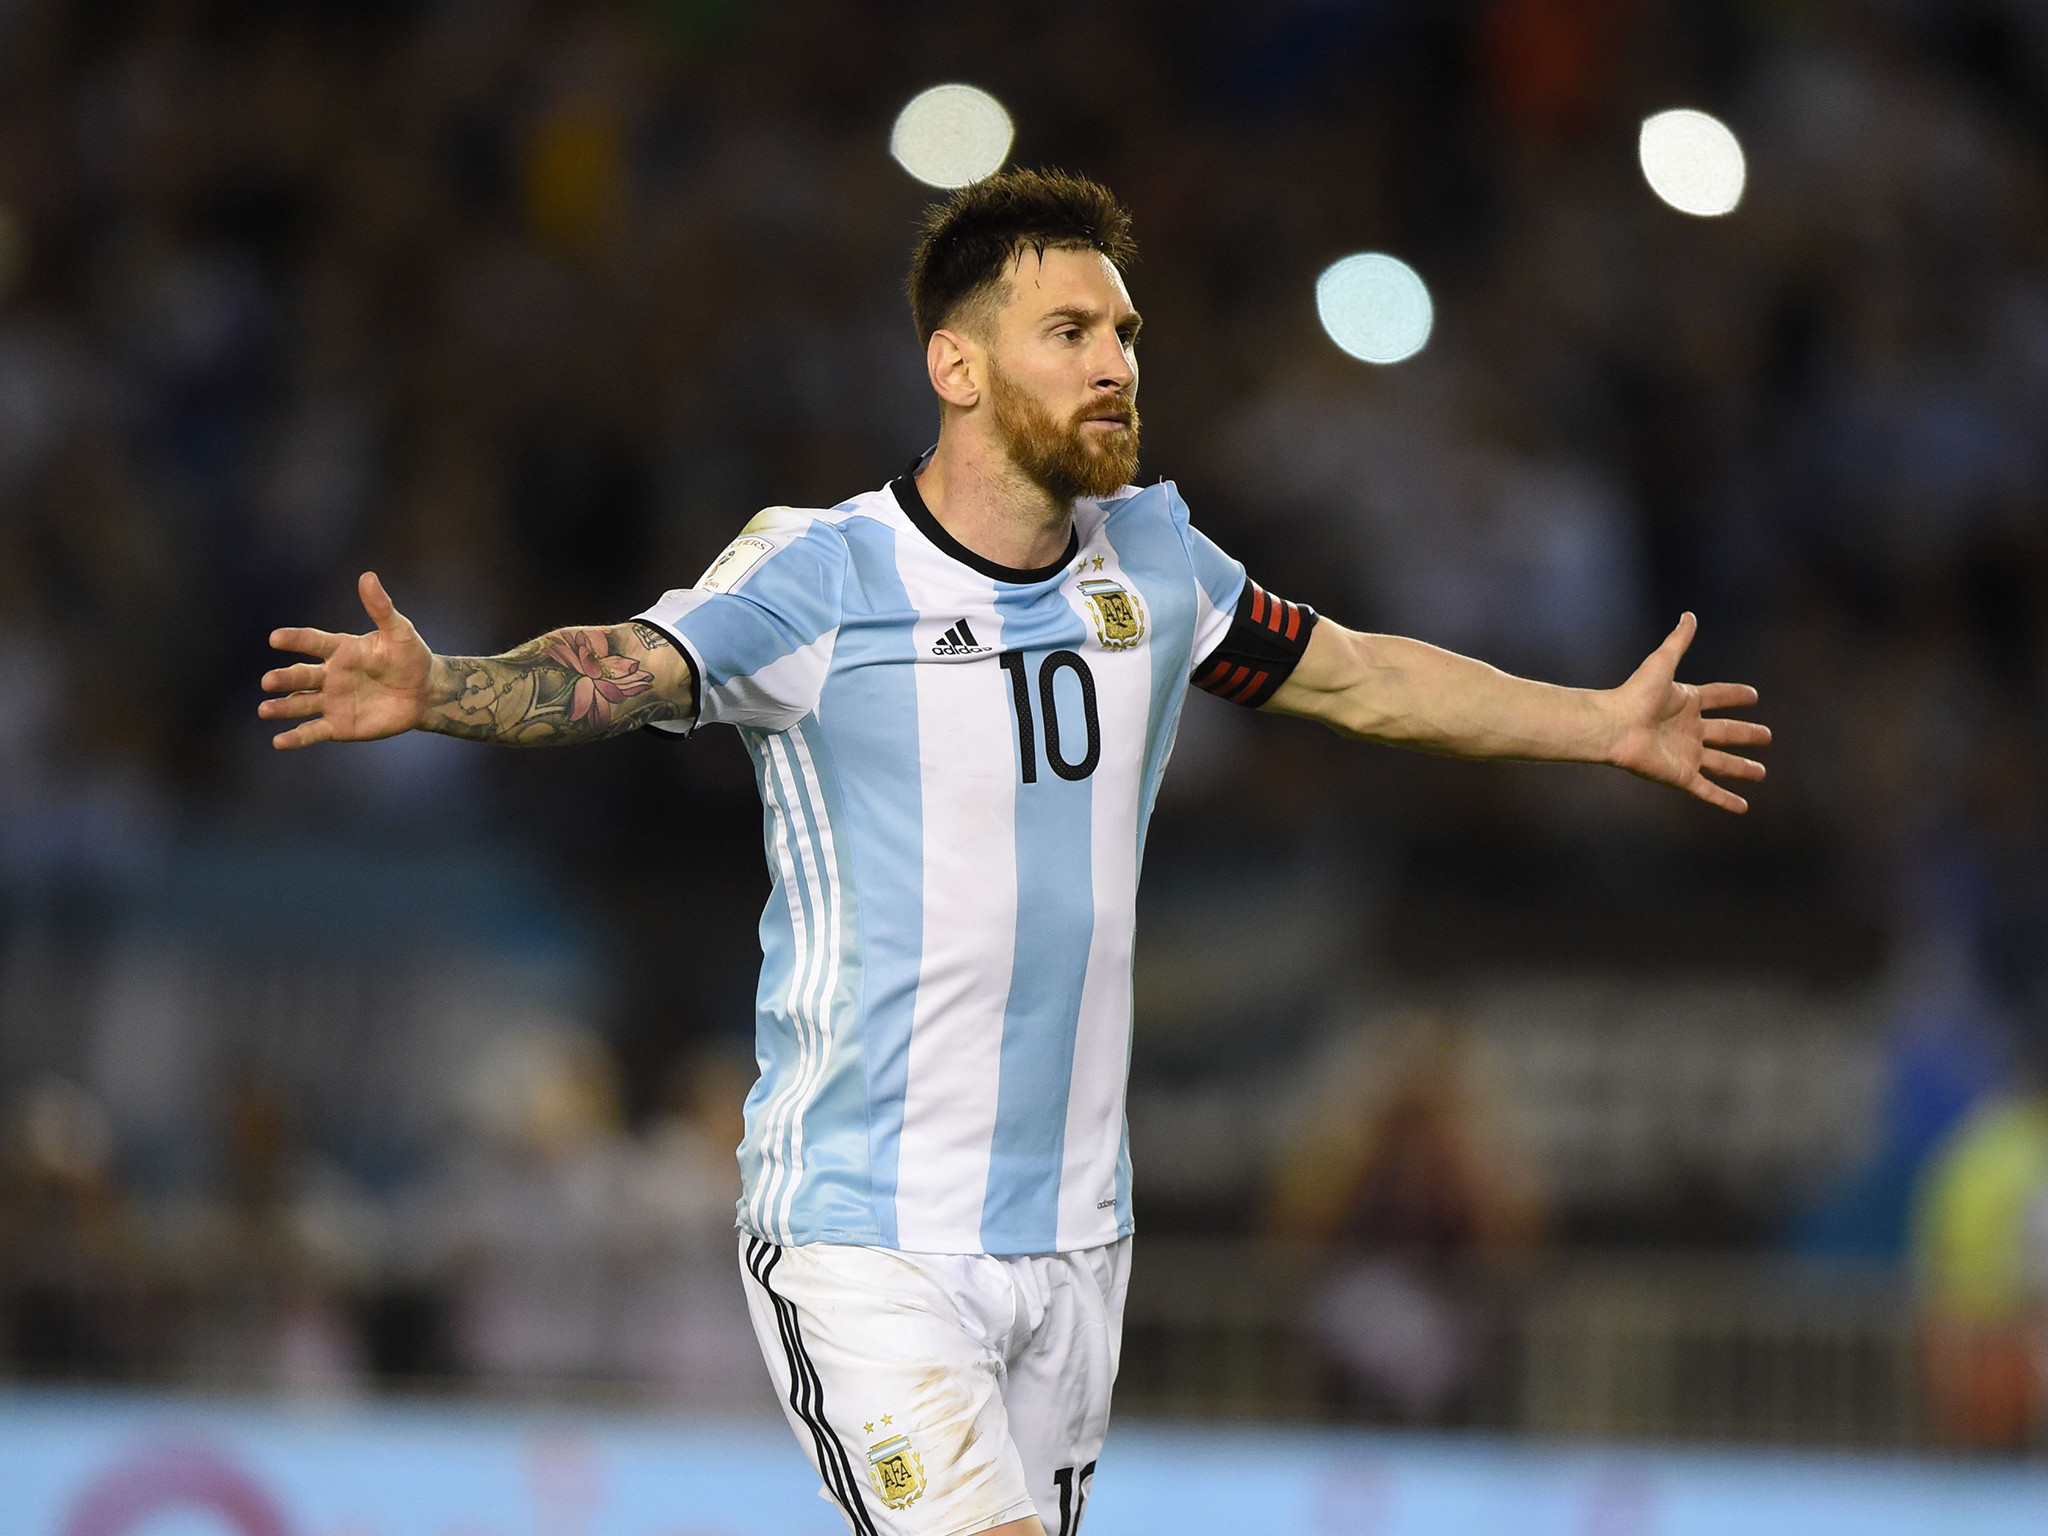 Lionel Messi Wallpaper 2018 70 Pictures